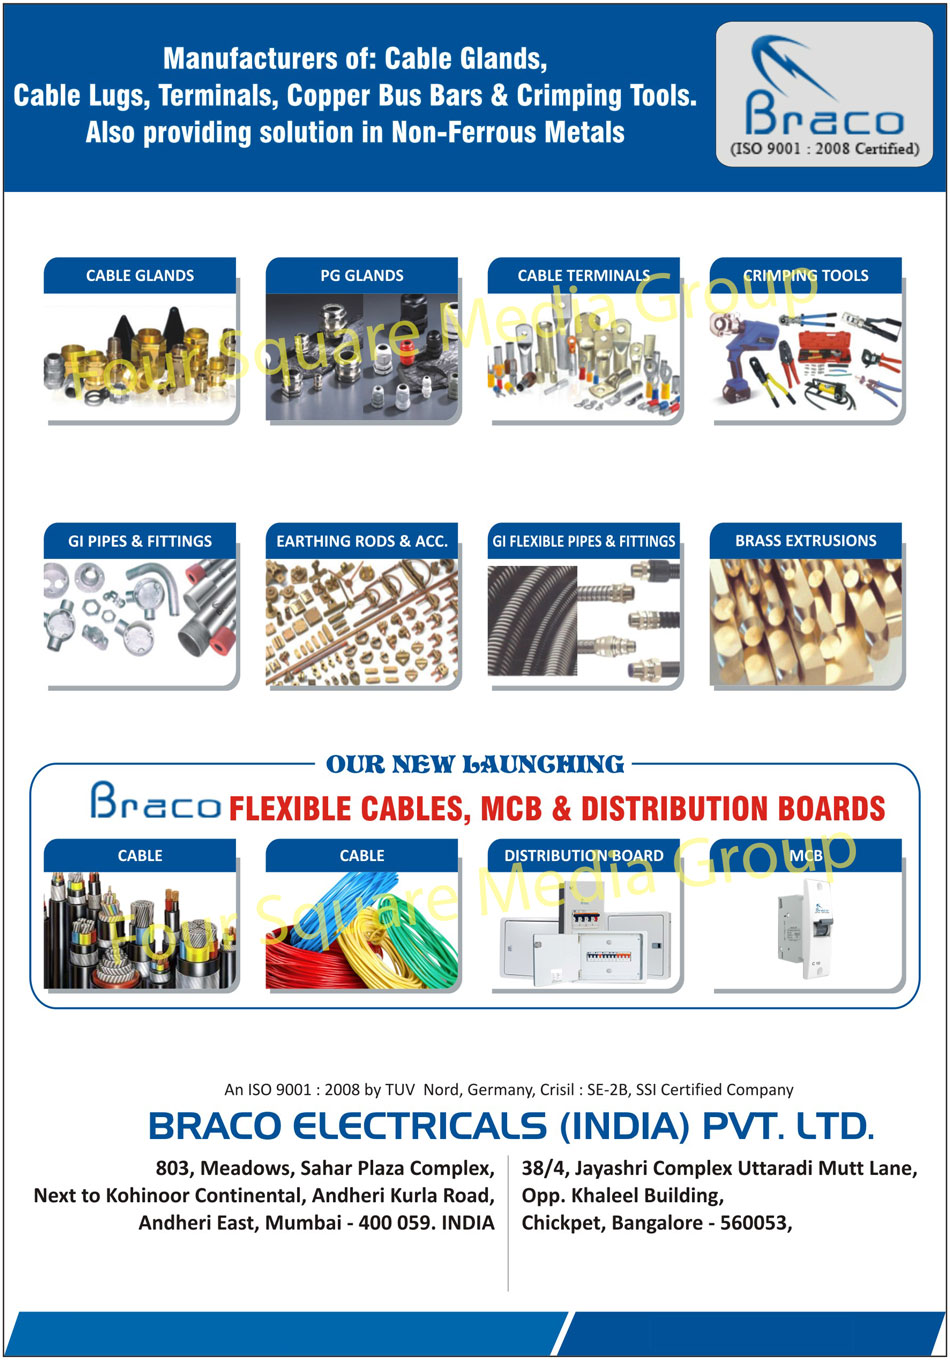 Cable Glands, Cable Lugs, Electrical Terminals, Copper Bus Bars, Crimping Tools, PG Glands, Cable Terminals, GI Pipes, GI Fittings, Earthing Rods, Earthing Accessories, GI Flexible Pipes, GI Flexible Fittings, Brass Extrusions, Flexible Cables, MCB, Distribution Boxes, Cables, Distribution Boards